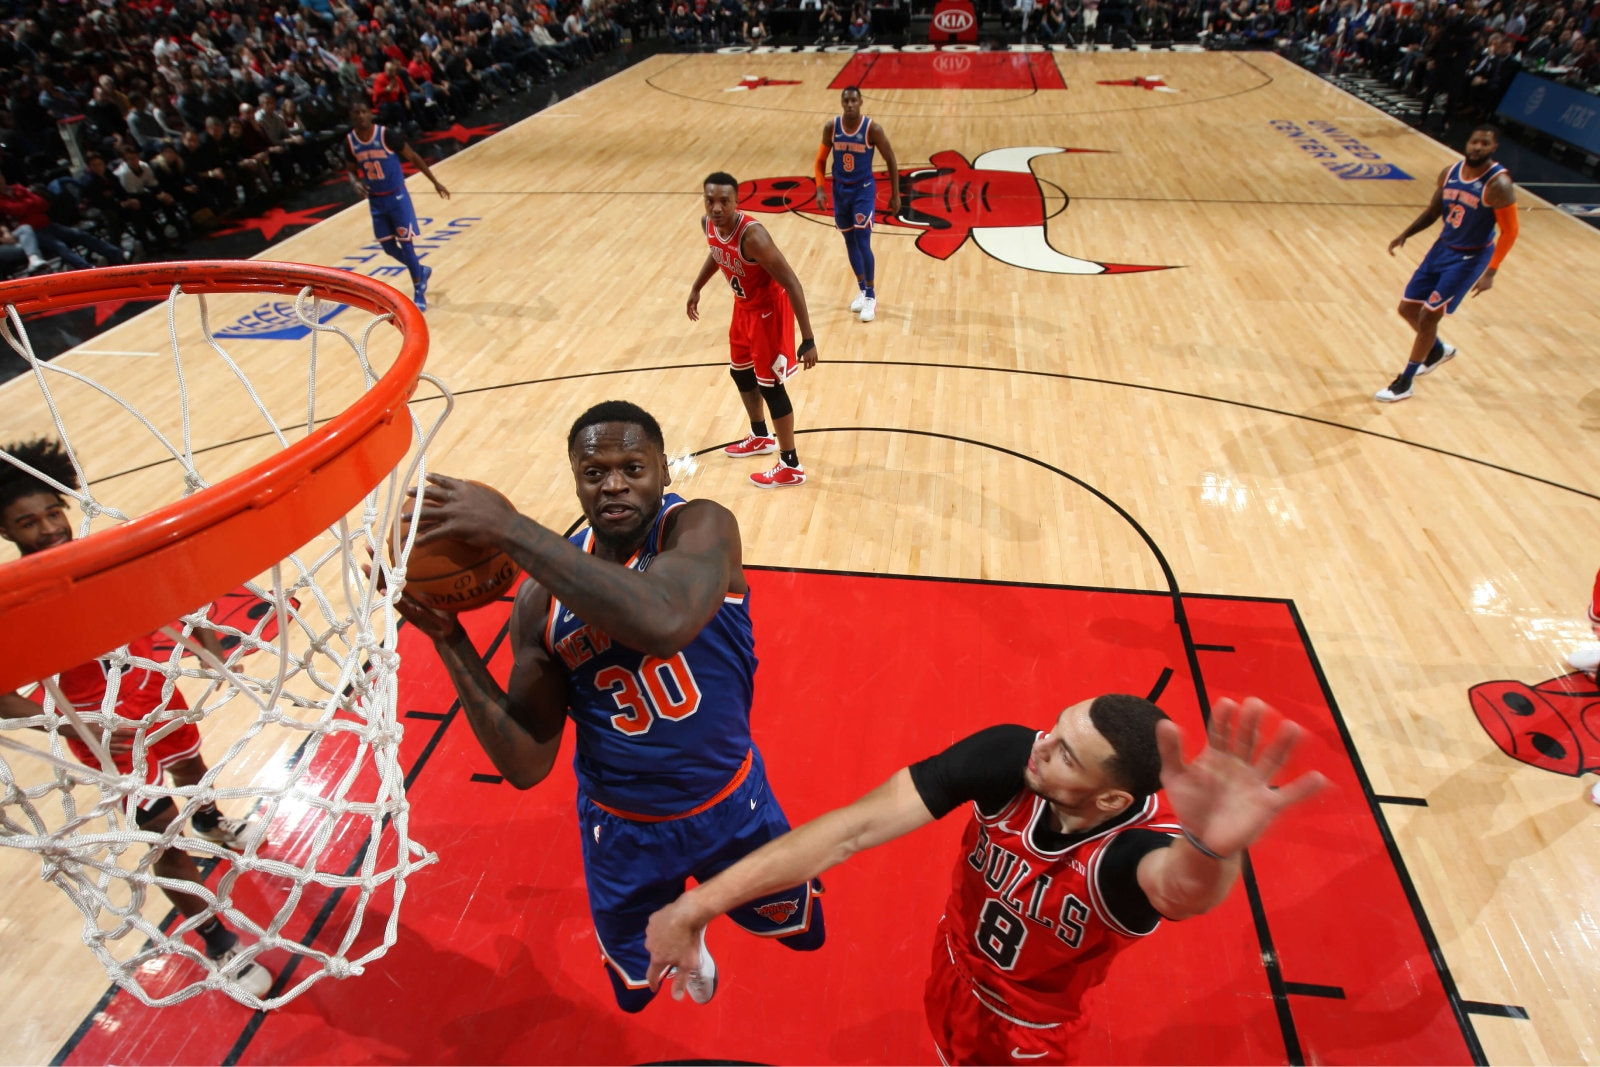 Julius Randle #30 of the New York Knicks drives to the basket against the Chicago Bulls on November 12, 2019